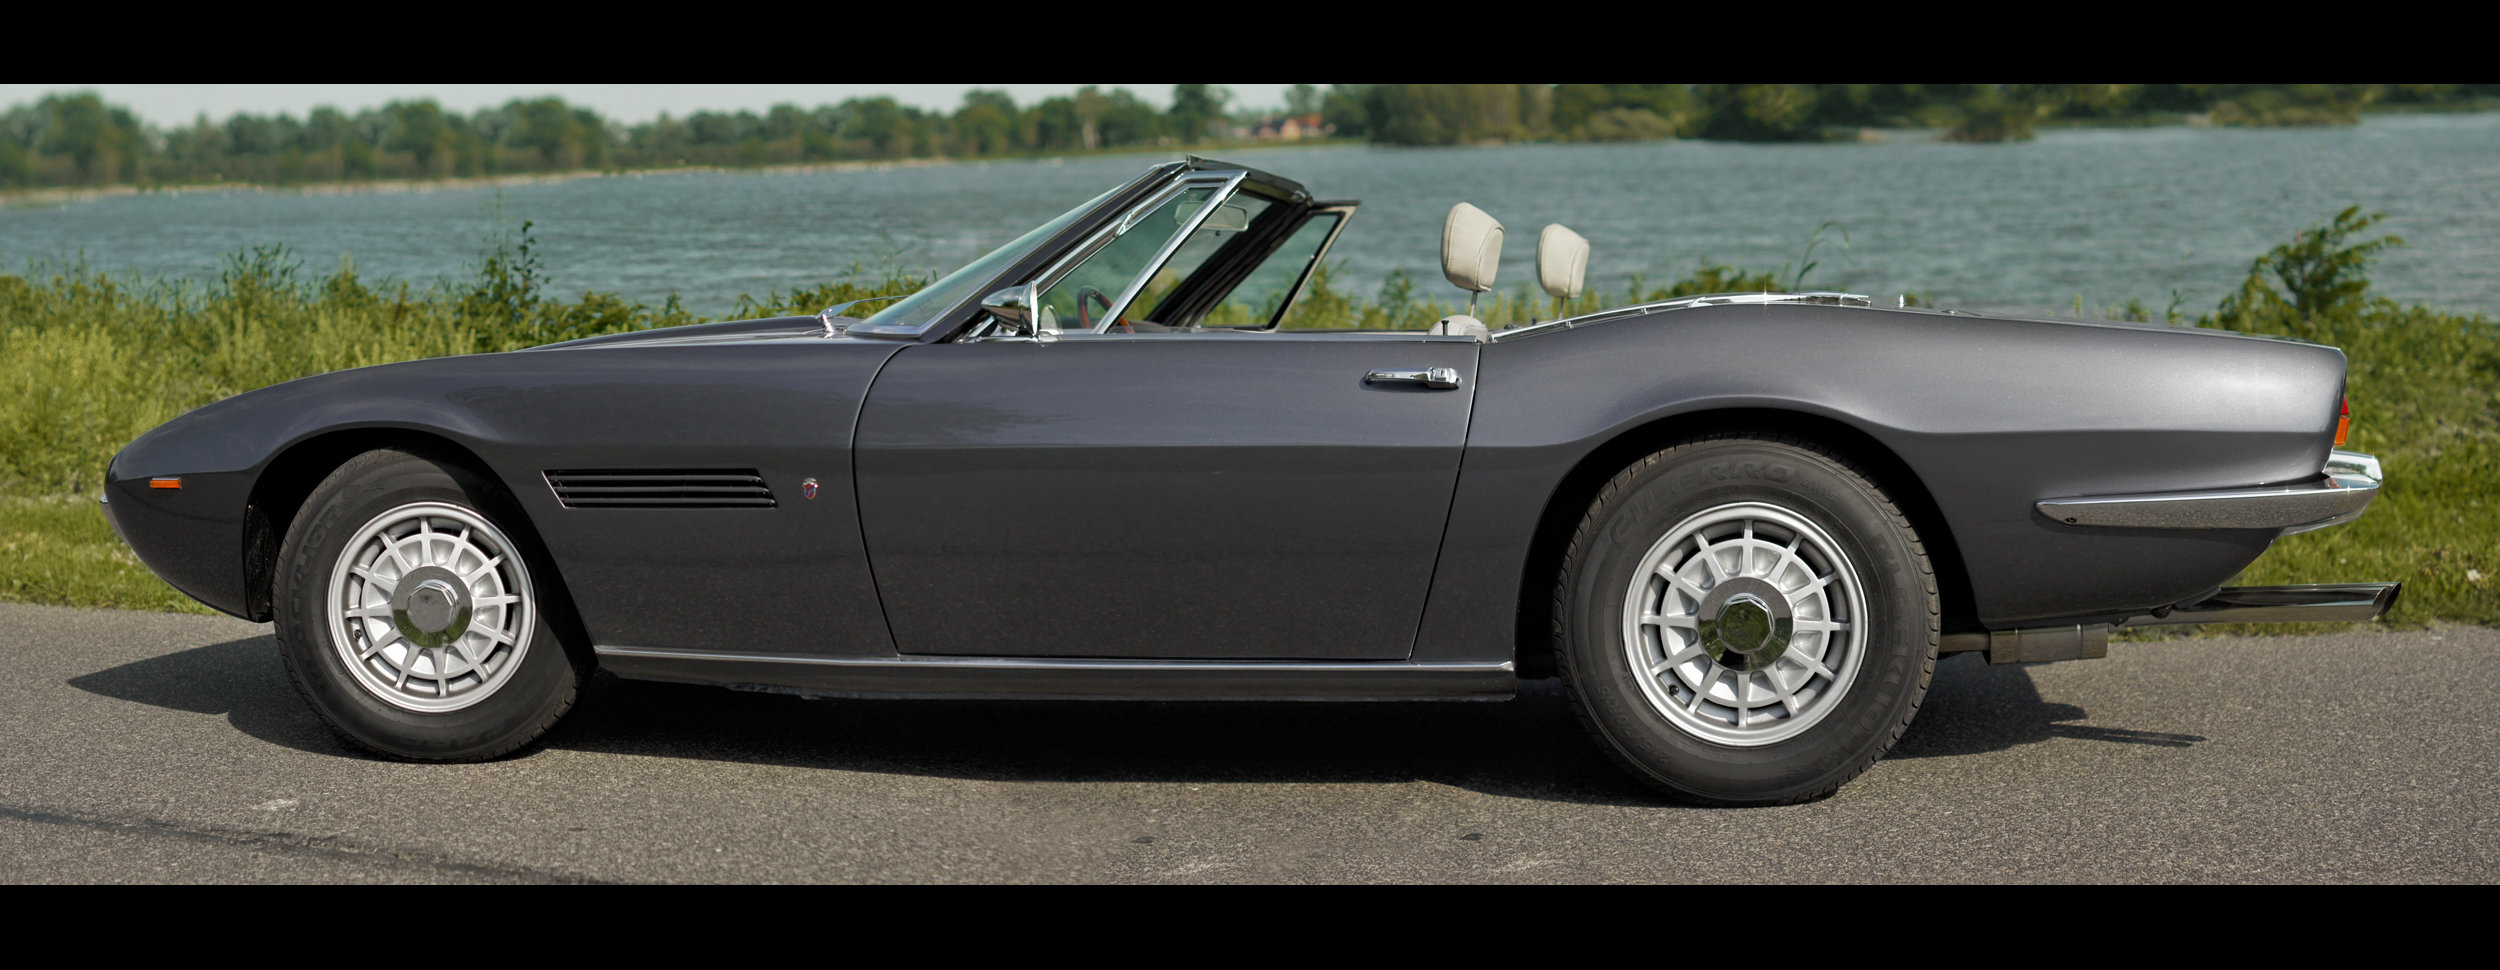 1971 Maserati Ghibli Spyder Conver.- frame off restored For Sale (picture 3 of 6)